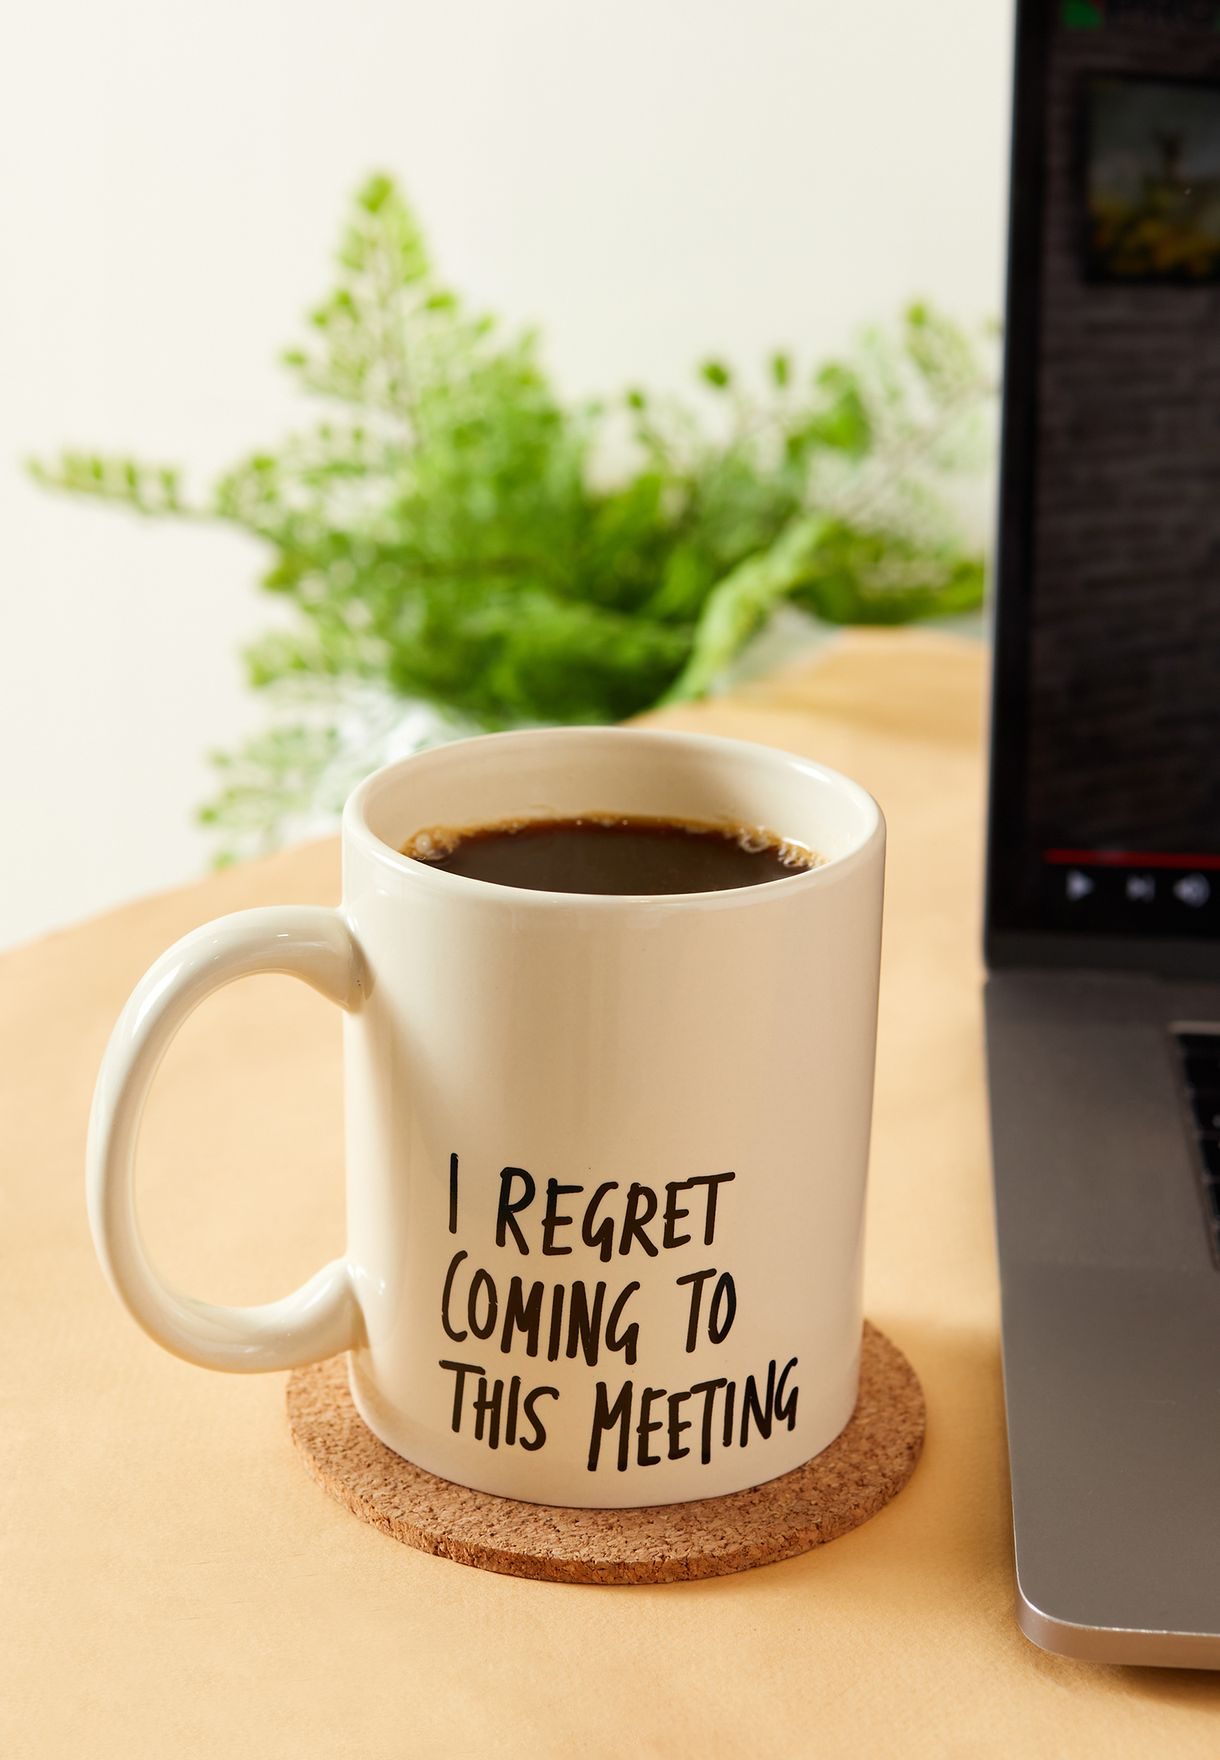 Regret Meeting Mug